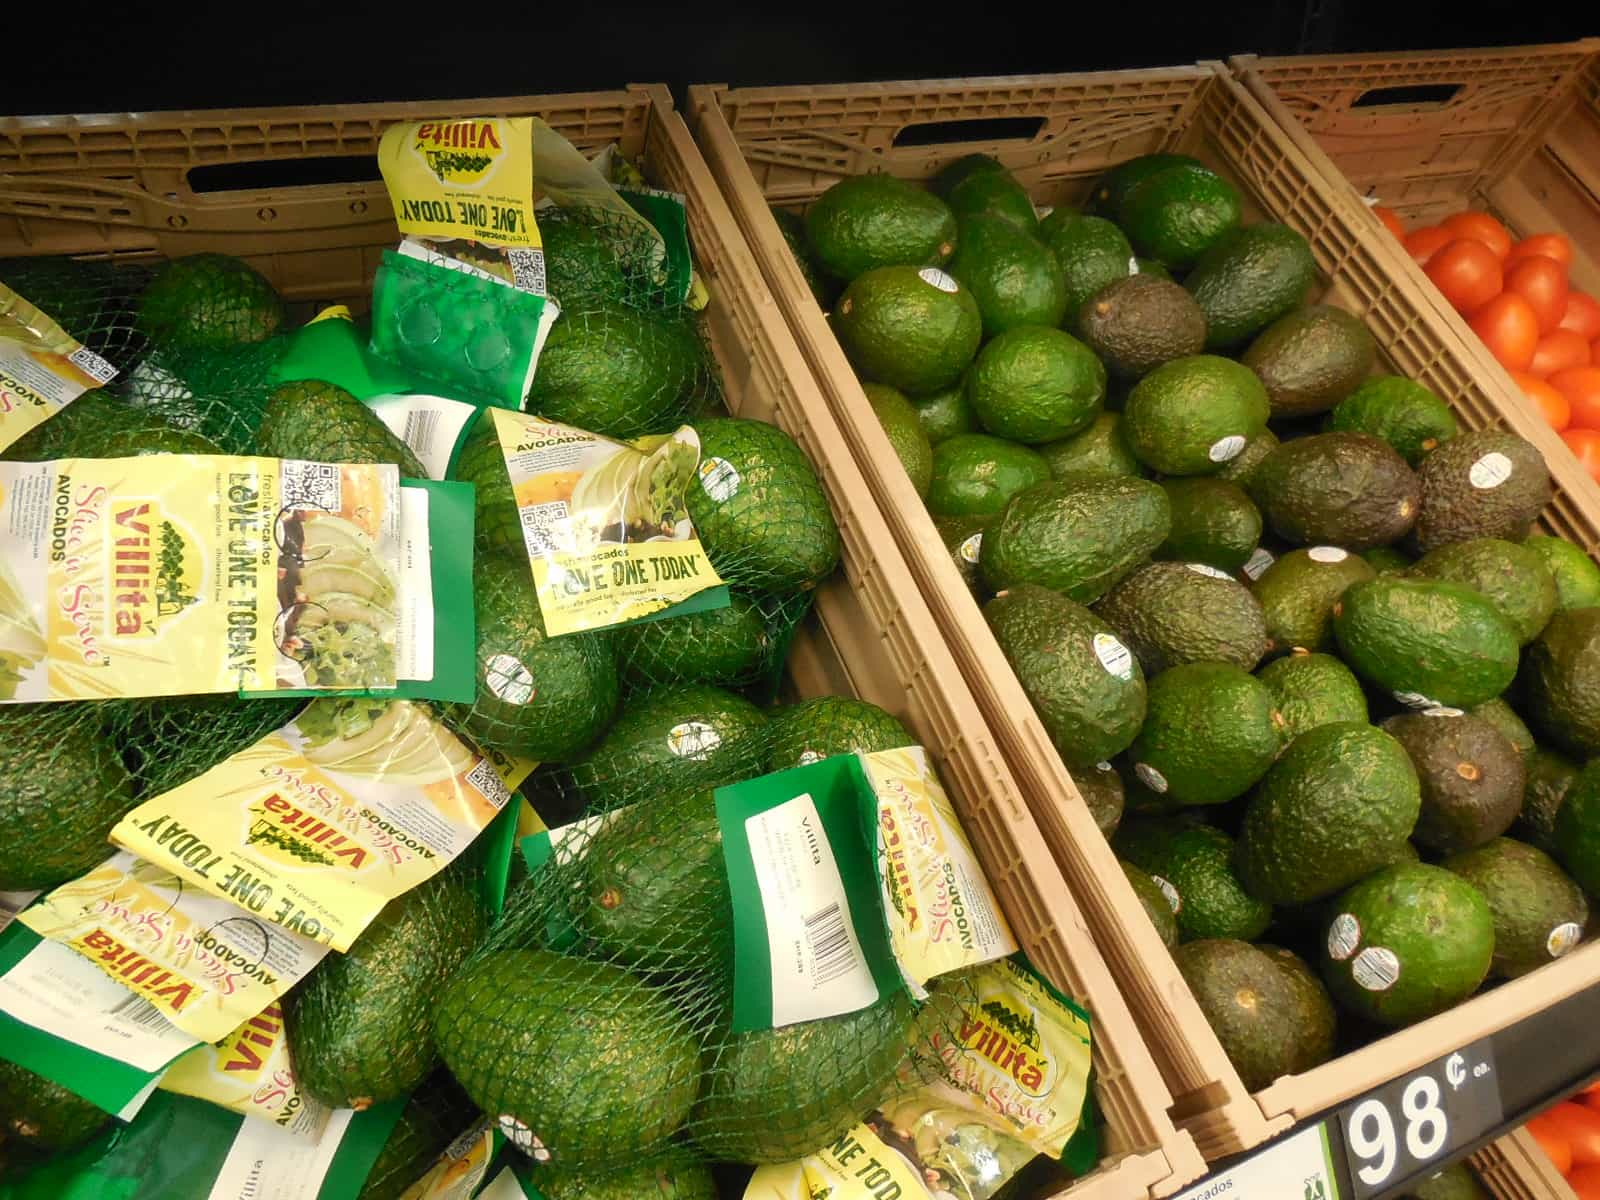 Take Avocados, Other Fruits and Veggies to Heart, During American Heart Month